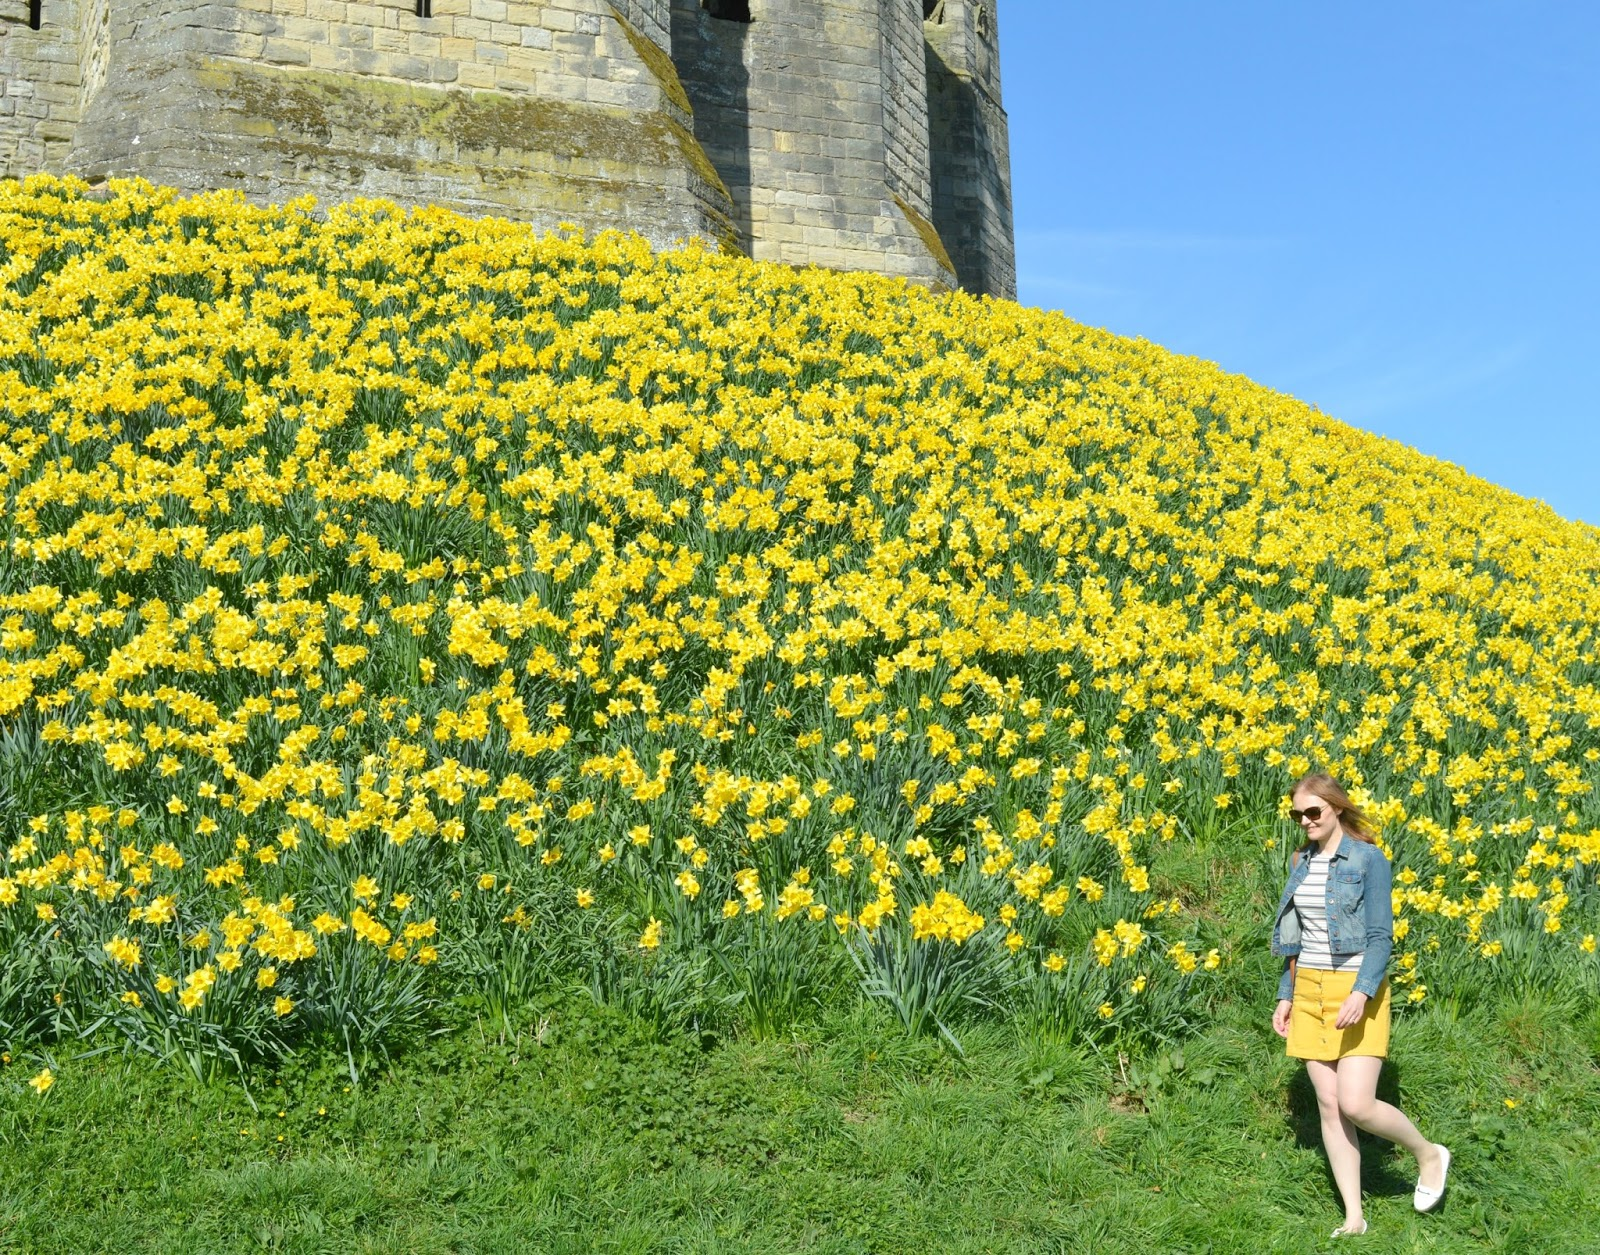 Daffodils at Castle - A Day Trip to Warkworth, Northumberland